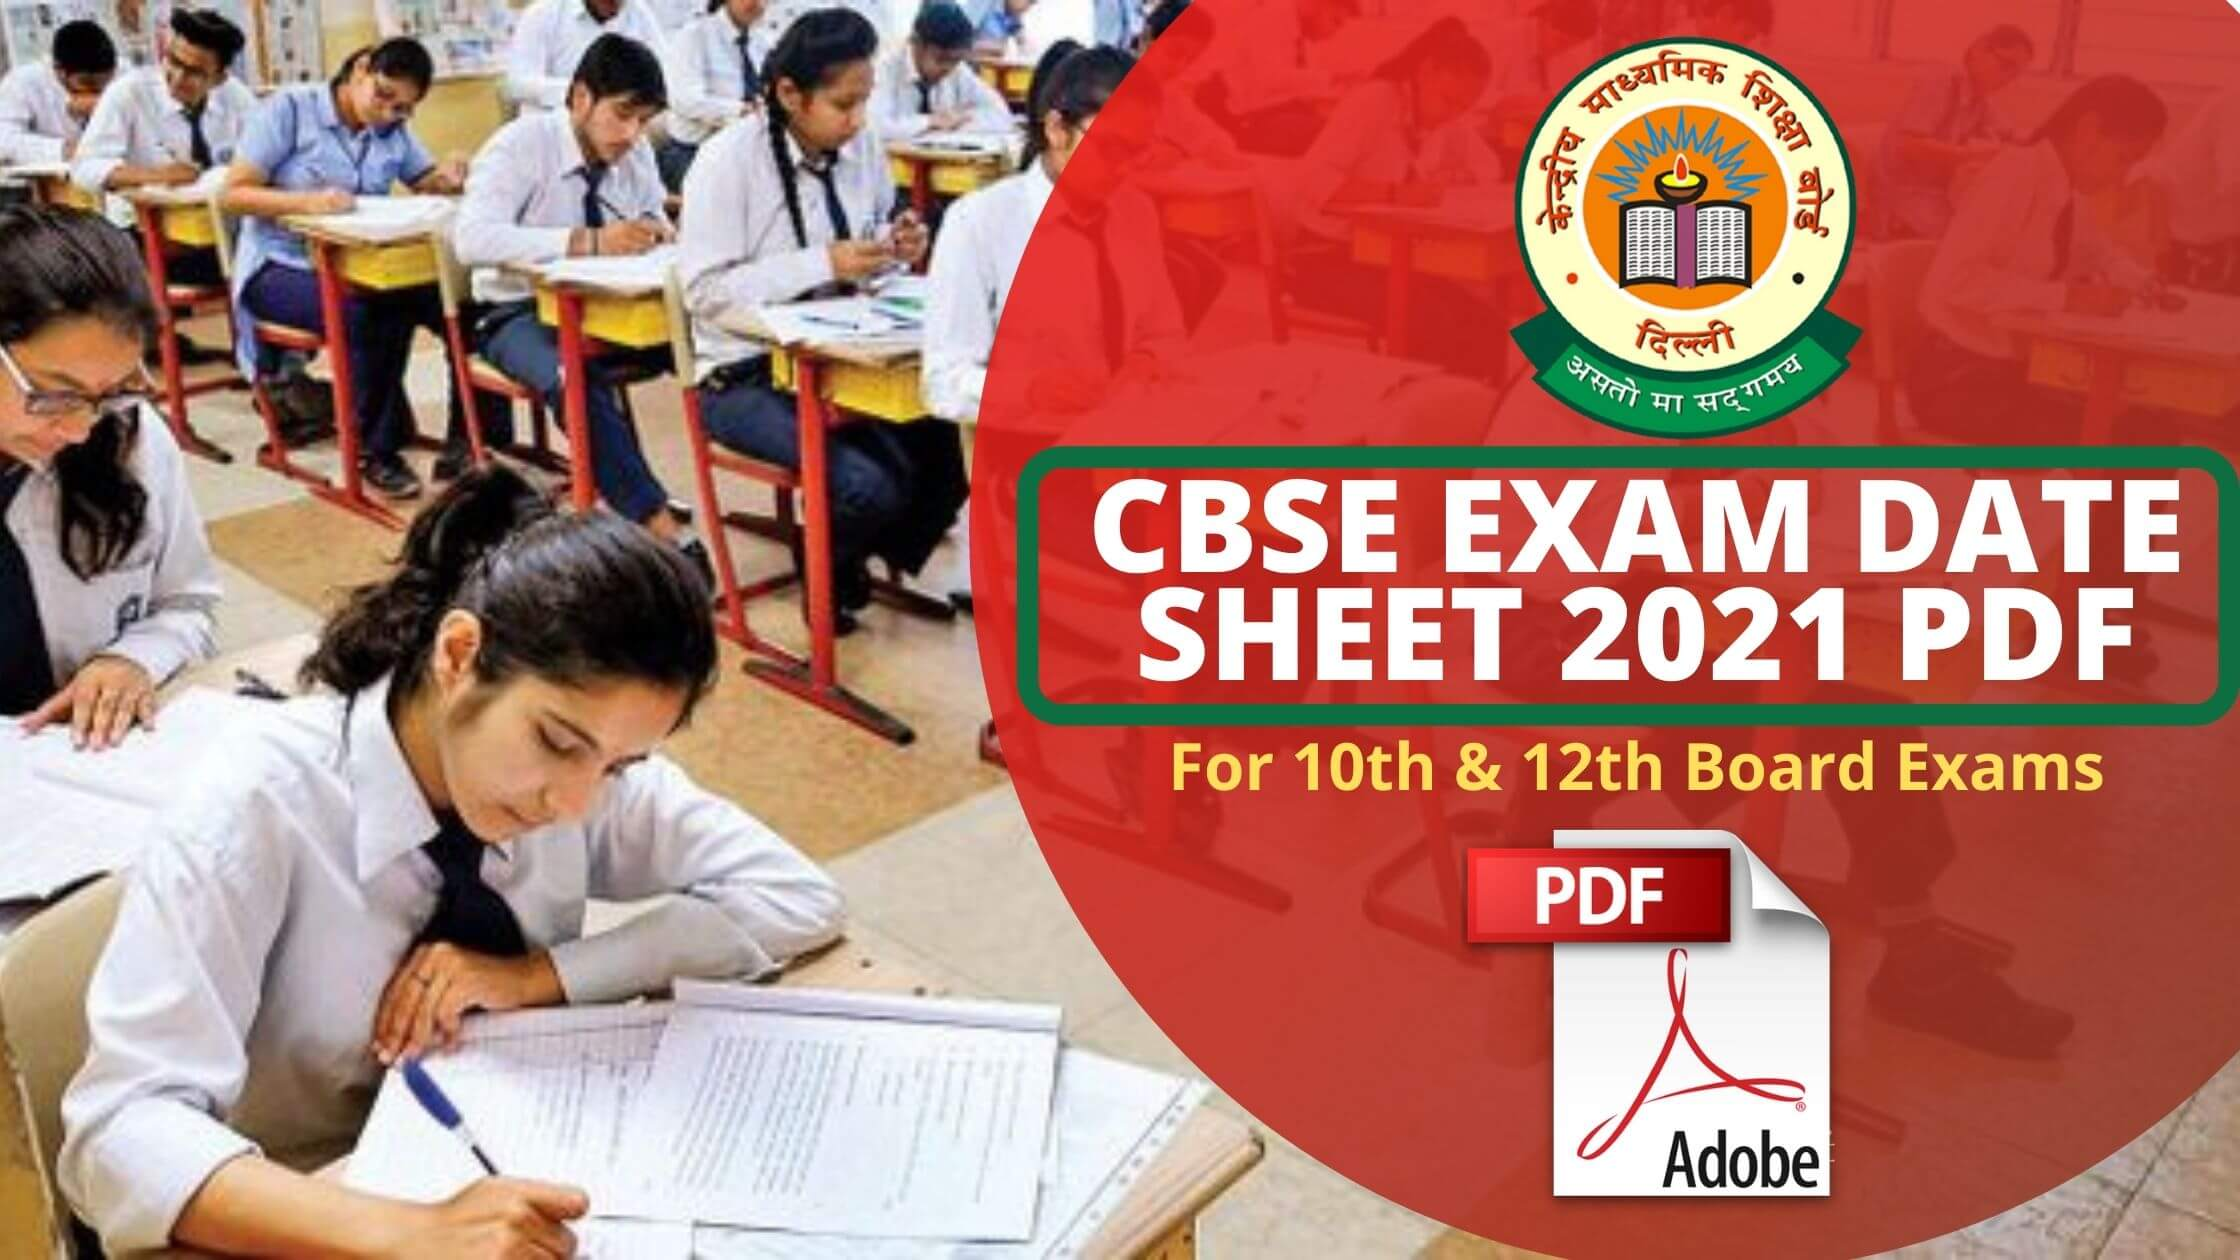 CBSE Exam Date Sheet 2021 PDF For 10th & 12th Board Exams